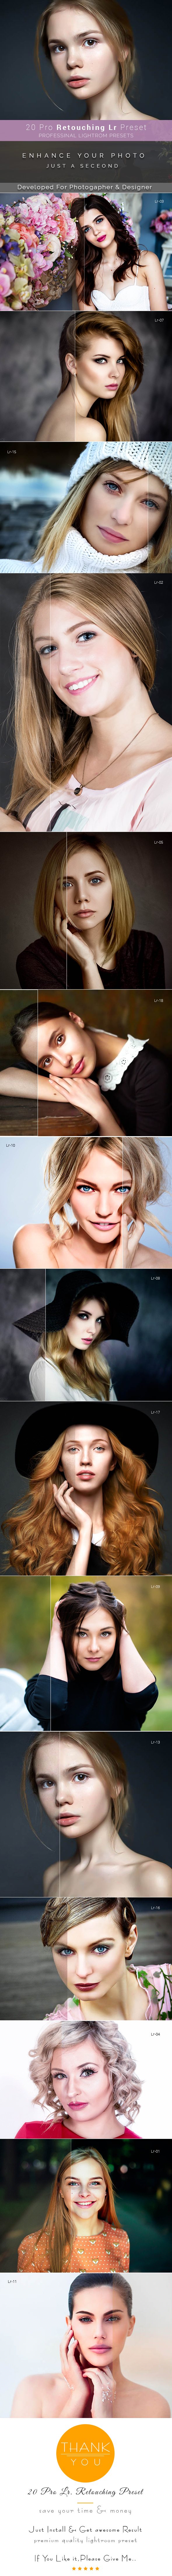 20 Pro Retouching Preset - Lightroom Presets Add-ons